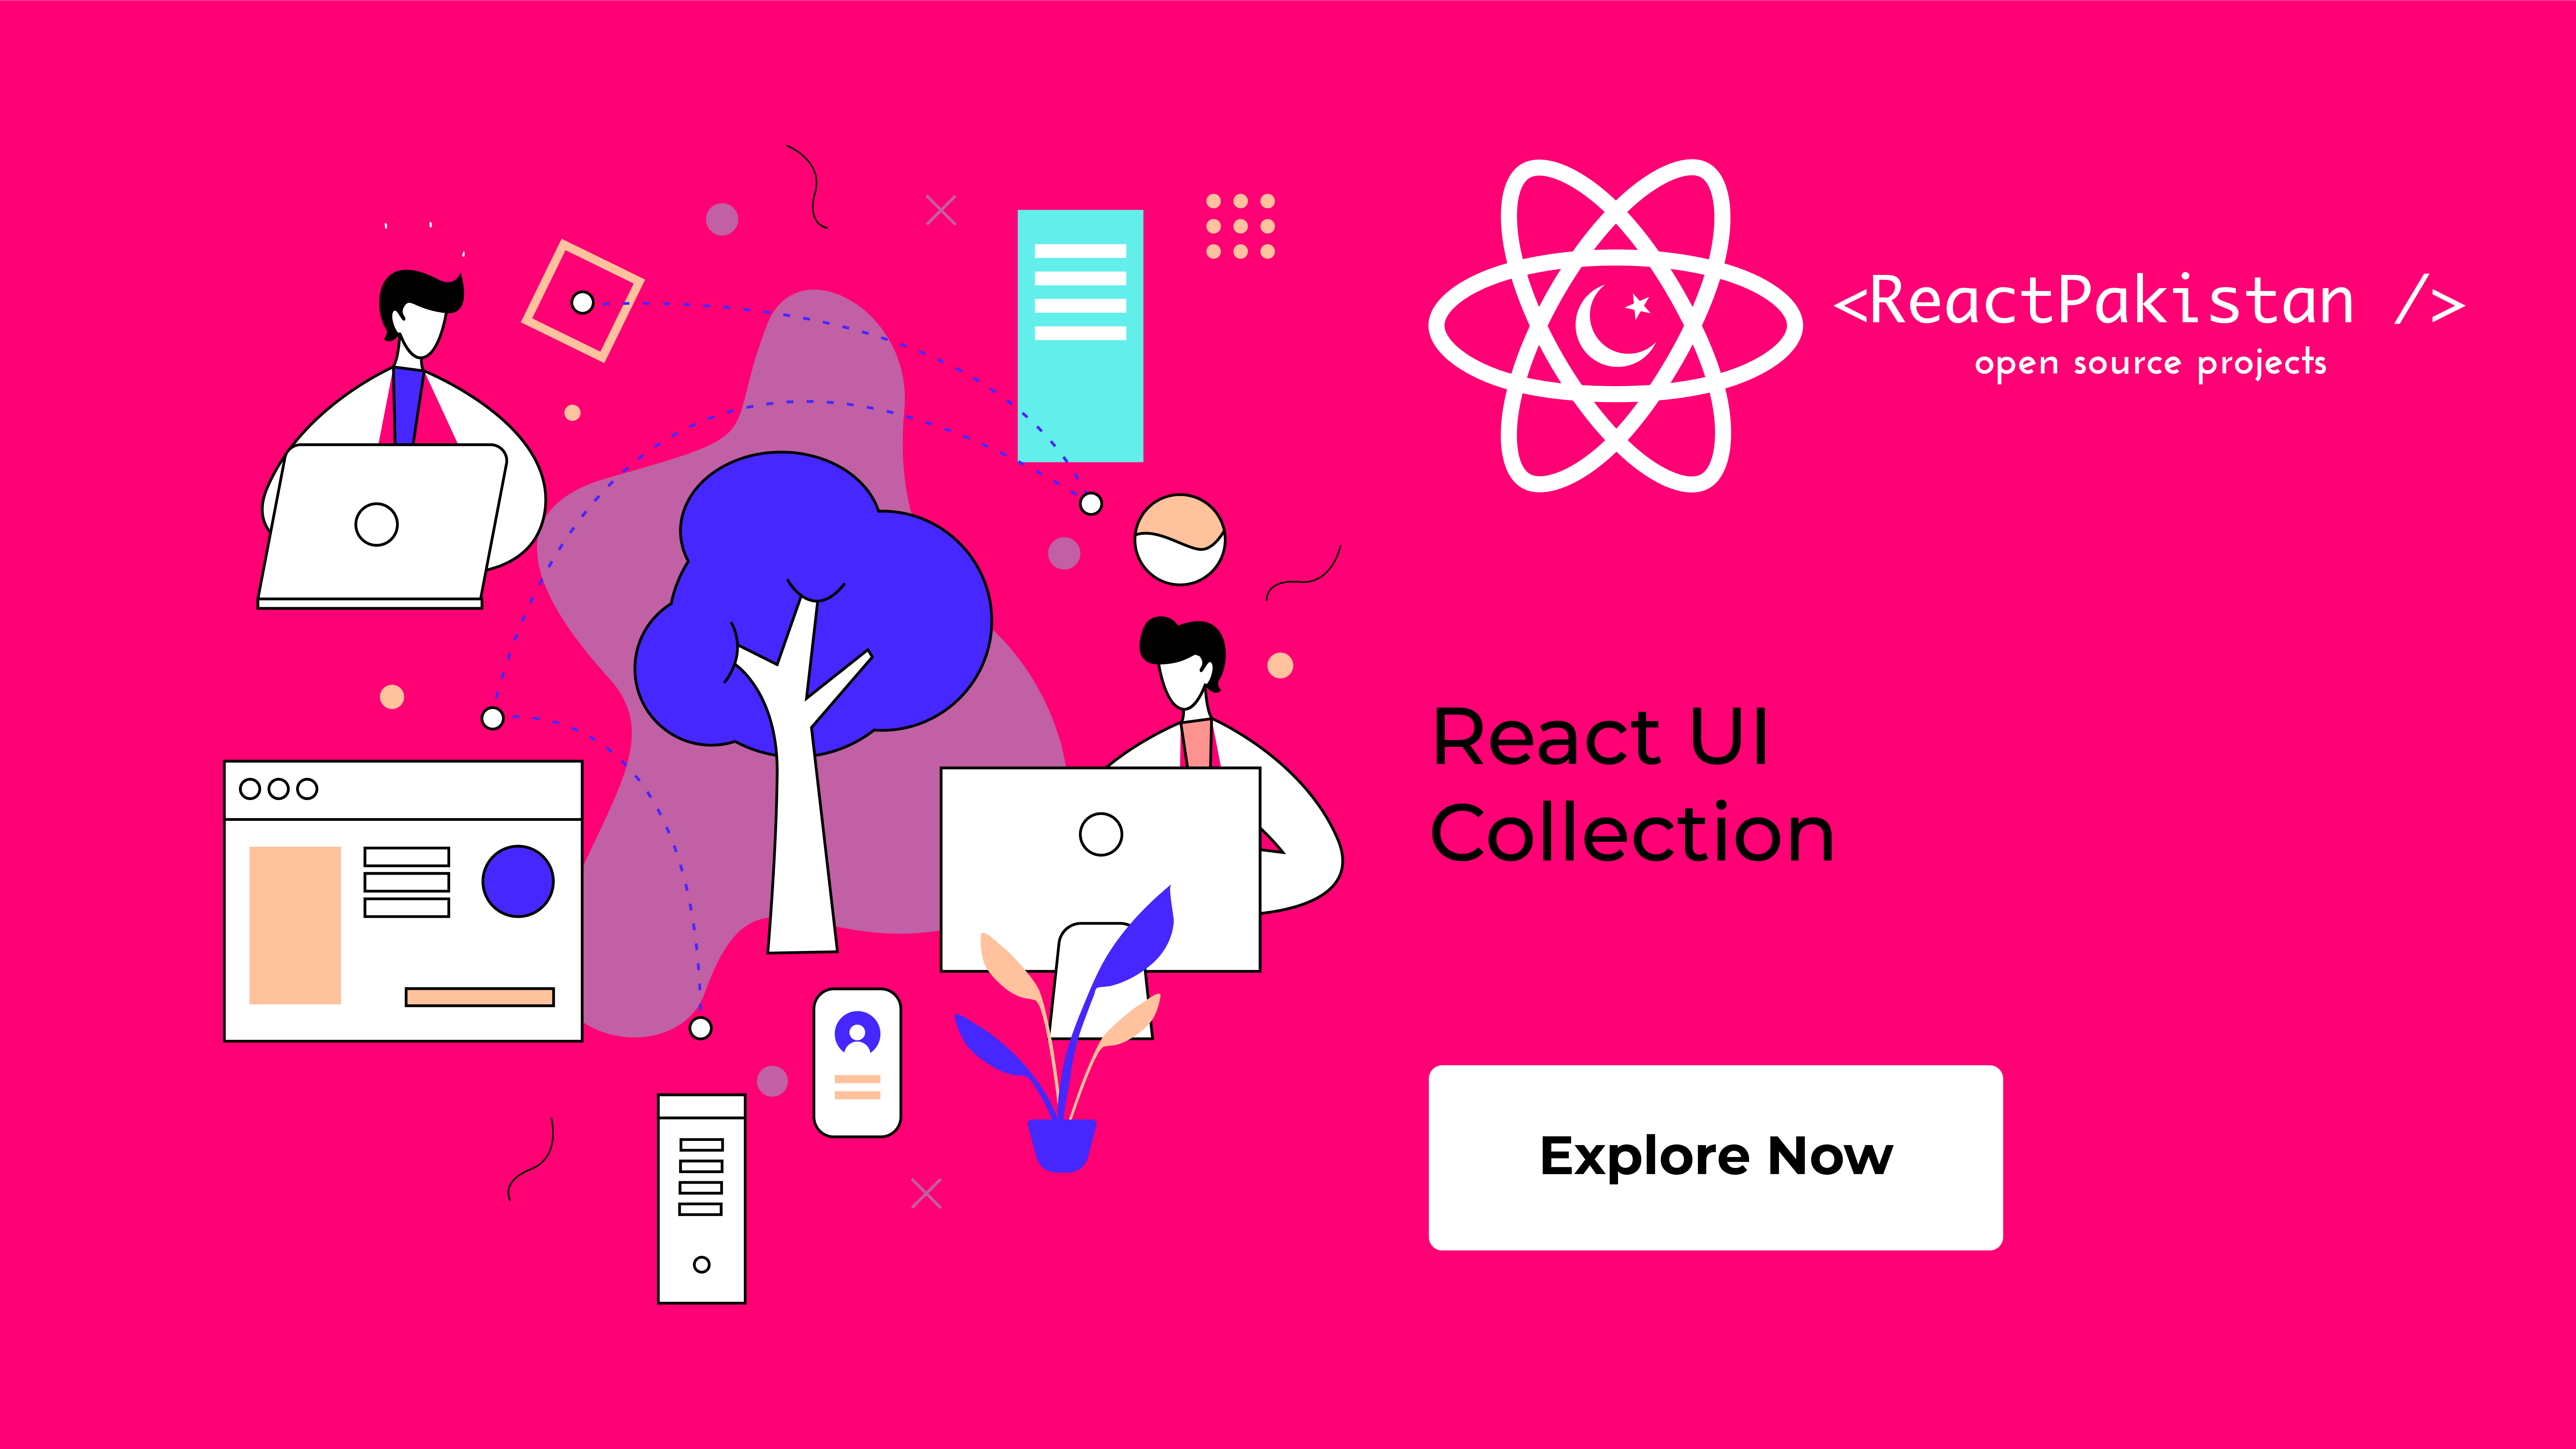 React Pakistan - React UI Collection